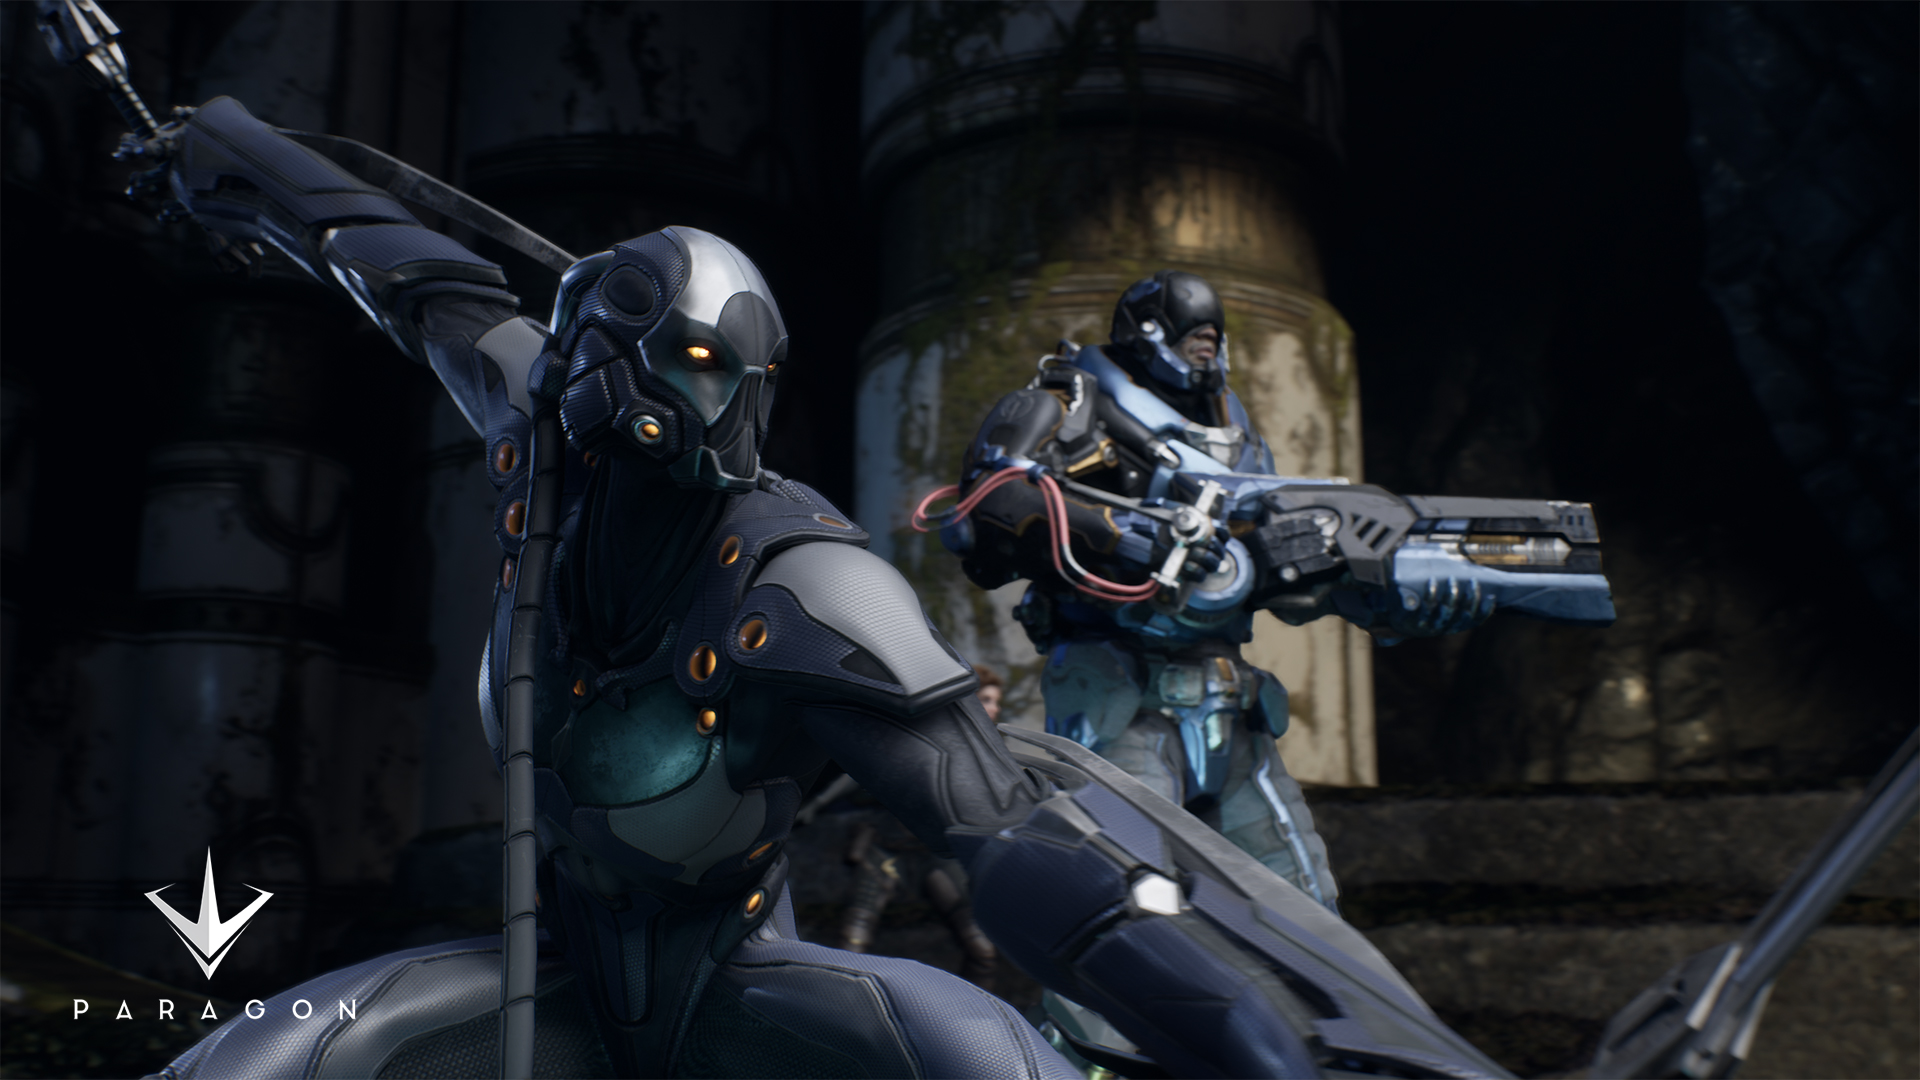 Paragon_Screenshot_2.jpg